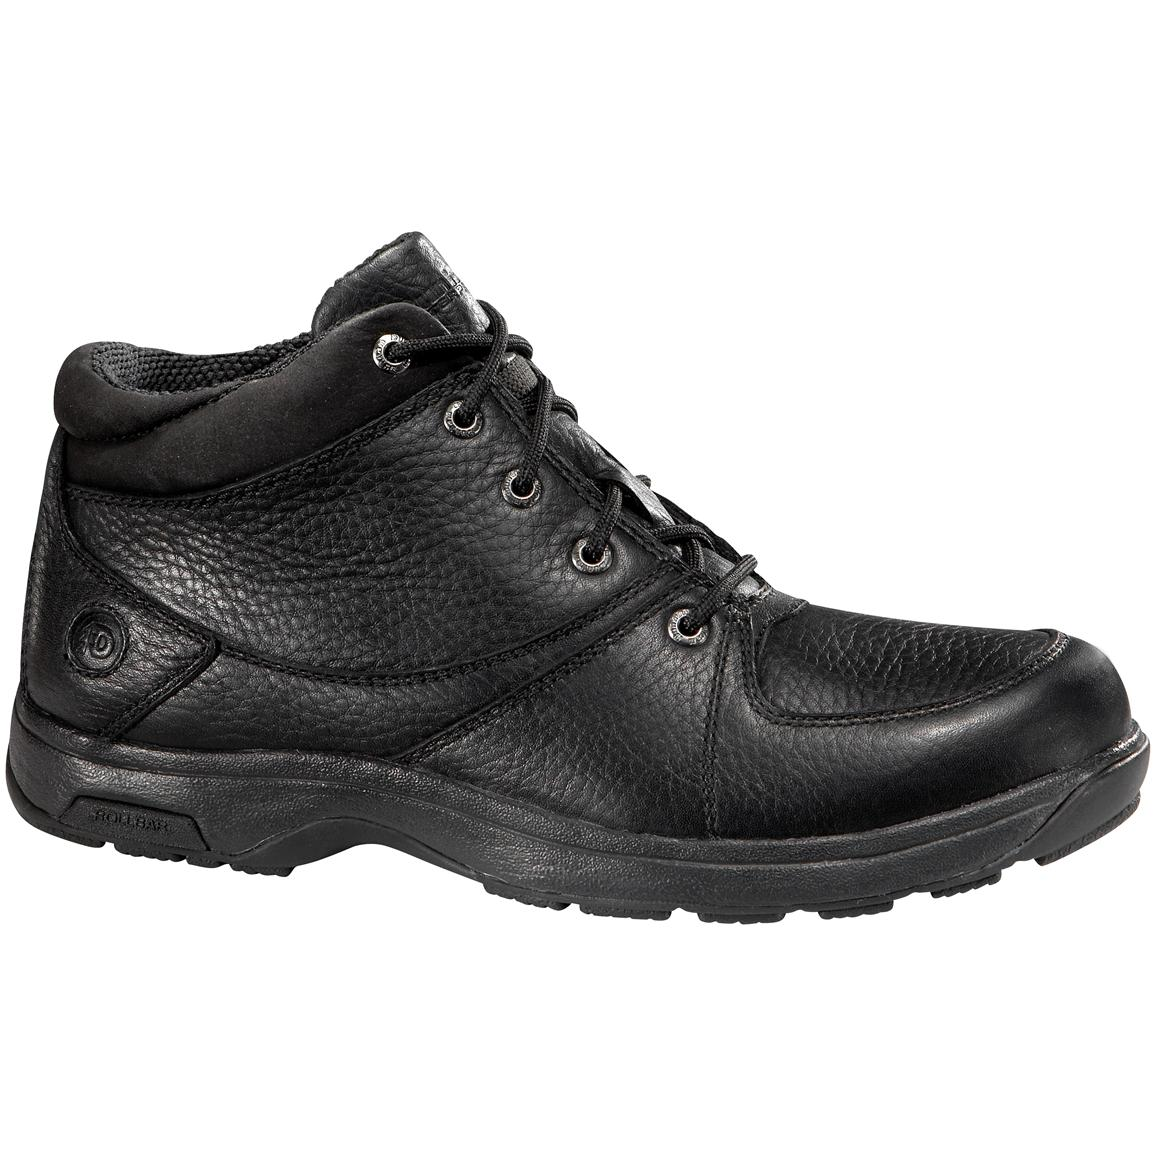 Waterproof Boots For Men QzV4s48C